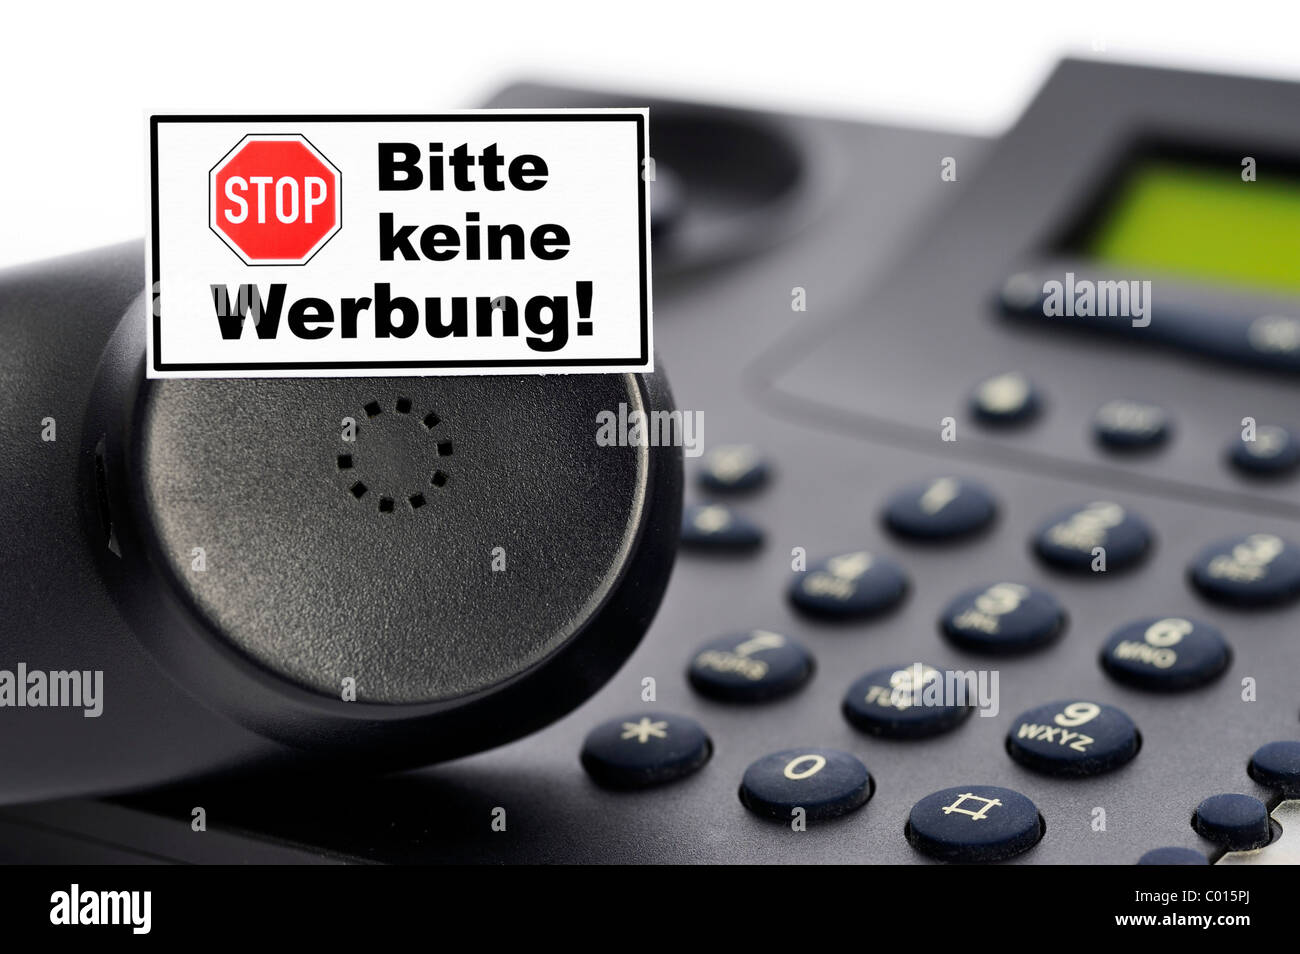 Phone and sign 'Bitte keine Werbung' or Please, no advertising, unauthorized phone advertising - Stock Image